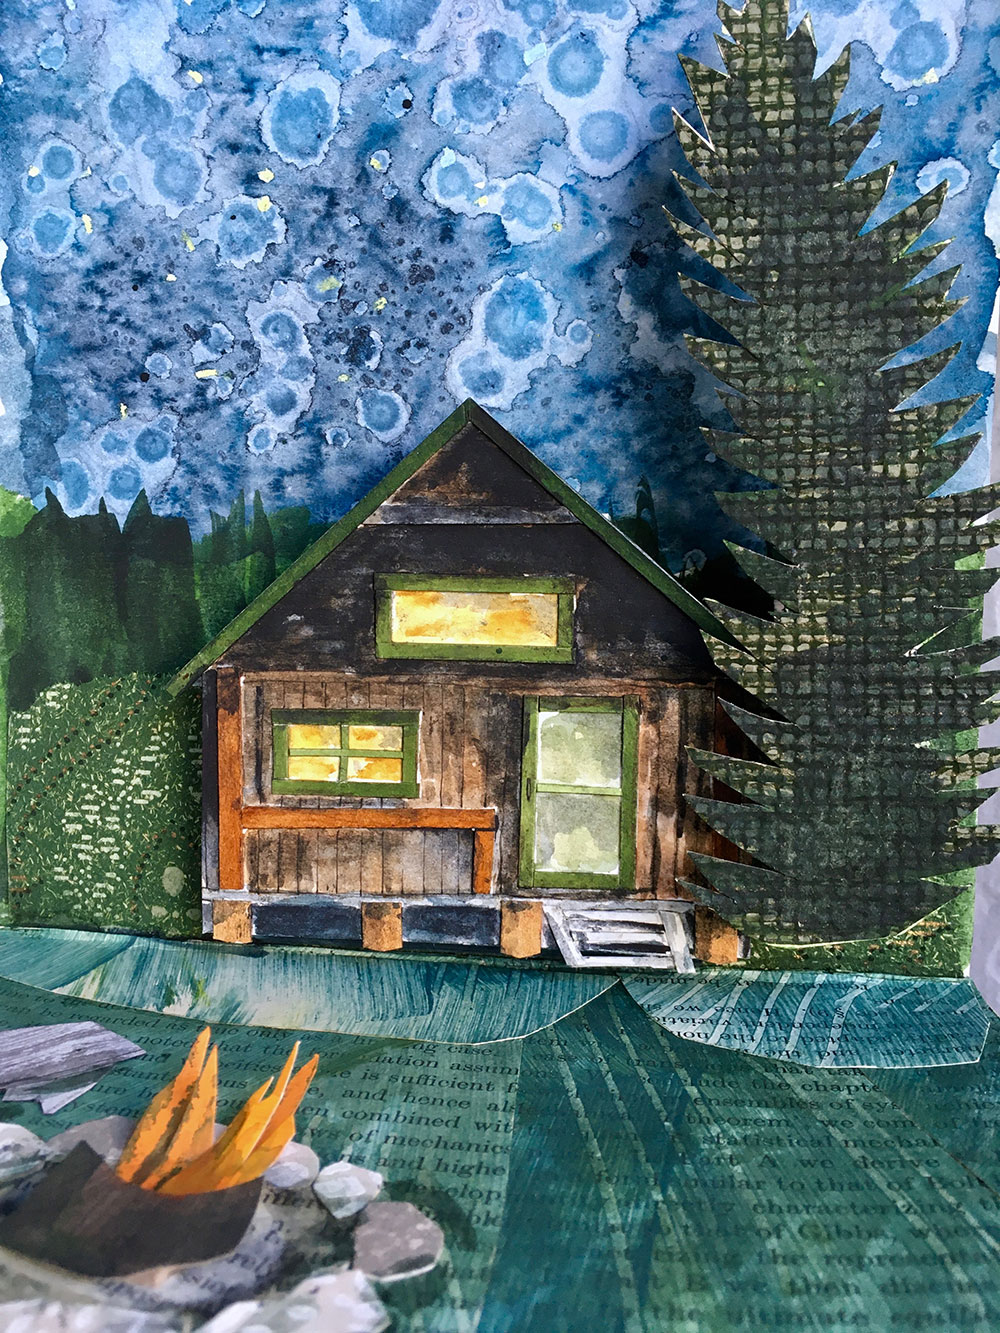 artwork by Jill Osgood of her cabin at Baxter State Park